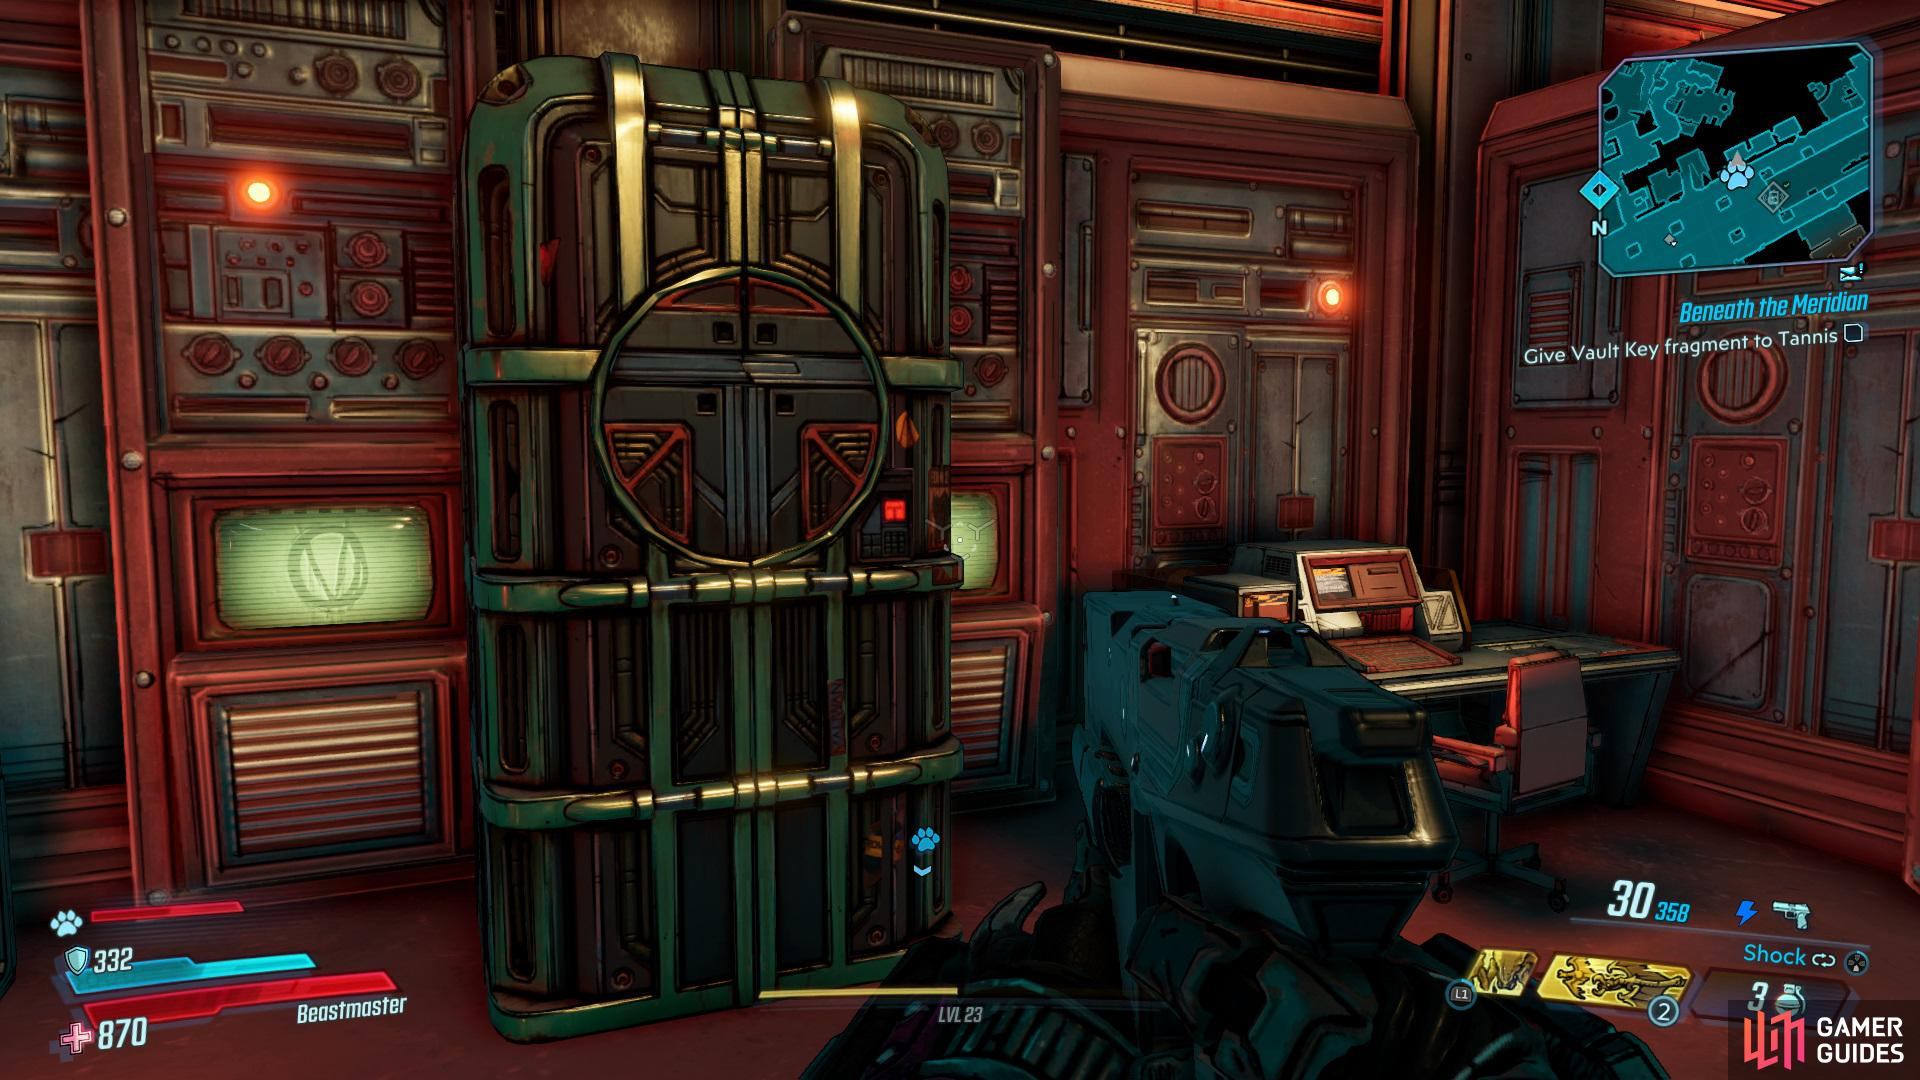 You'll be able to find the Typhon Dead Drop sitting in a room behind some red glass on the second floor of the lobby,